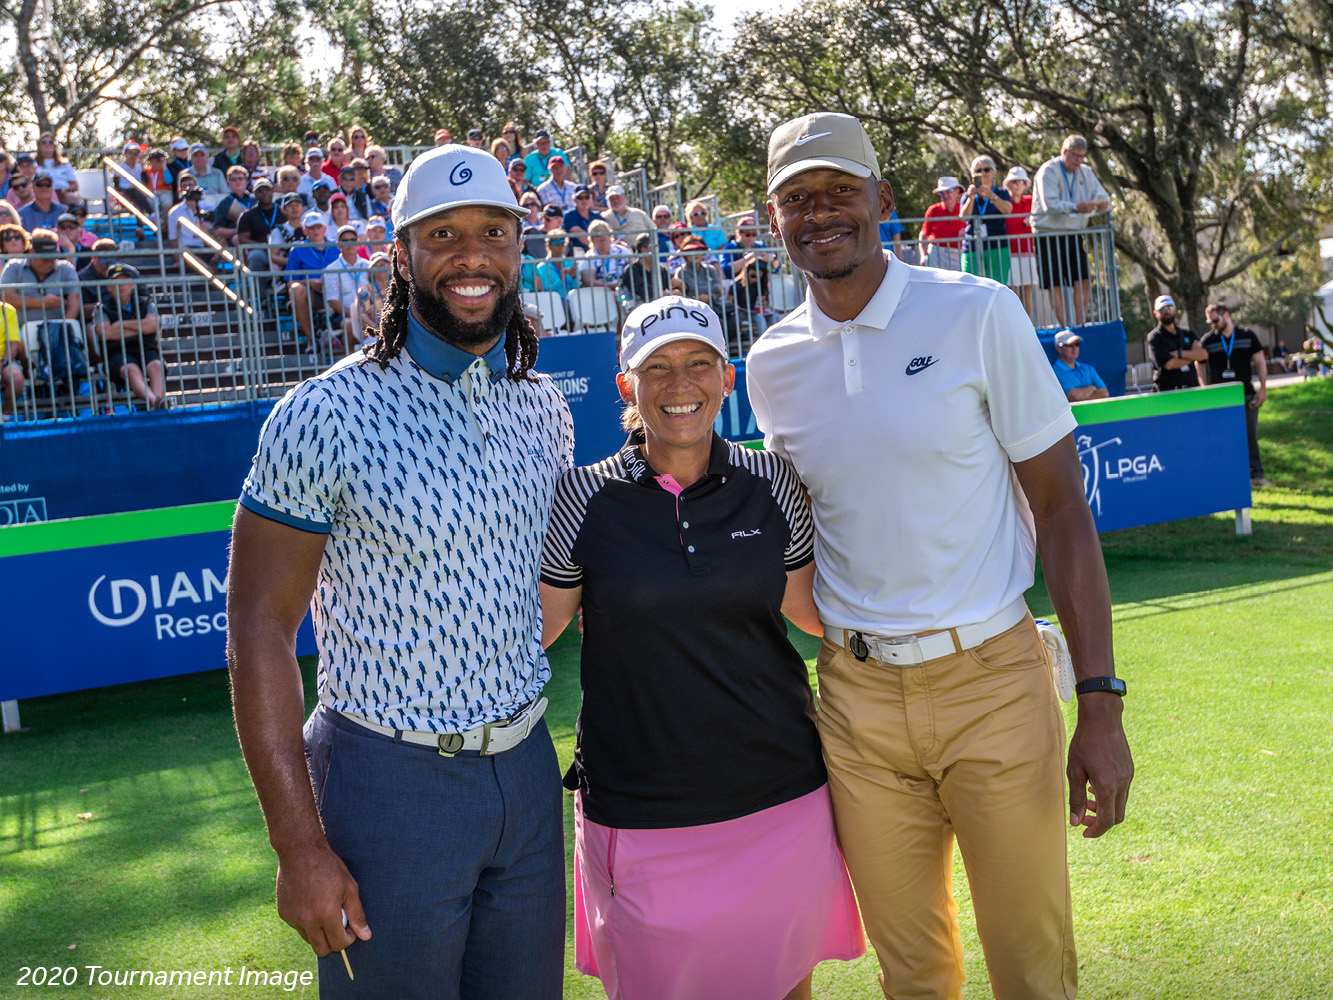 This tournament brings your favorite stars and LPGA Professionals to the course.